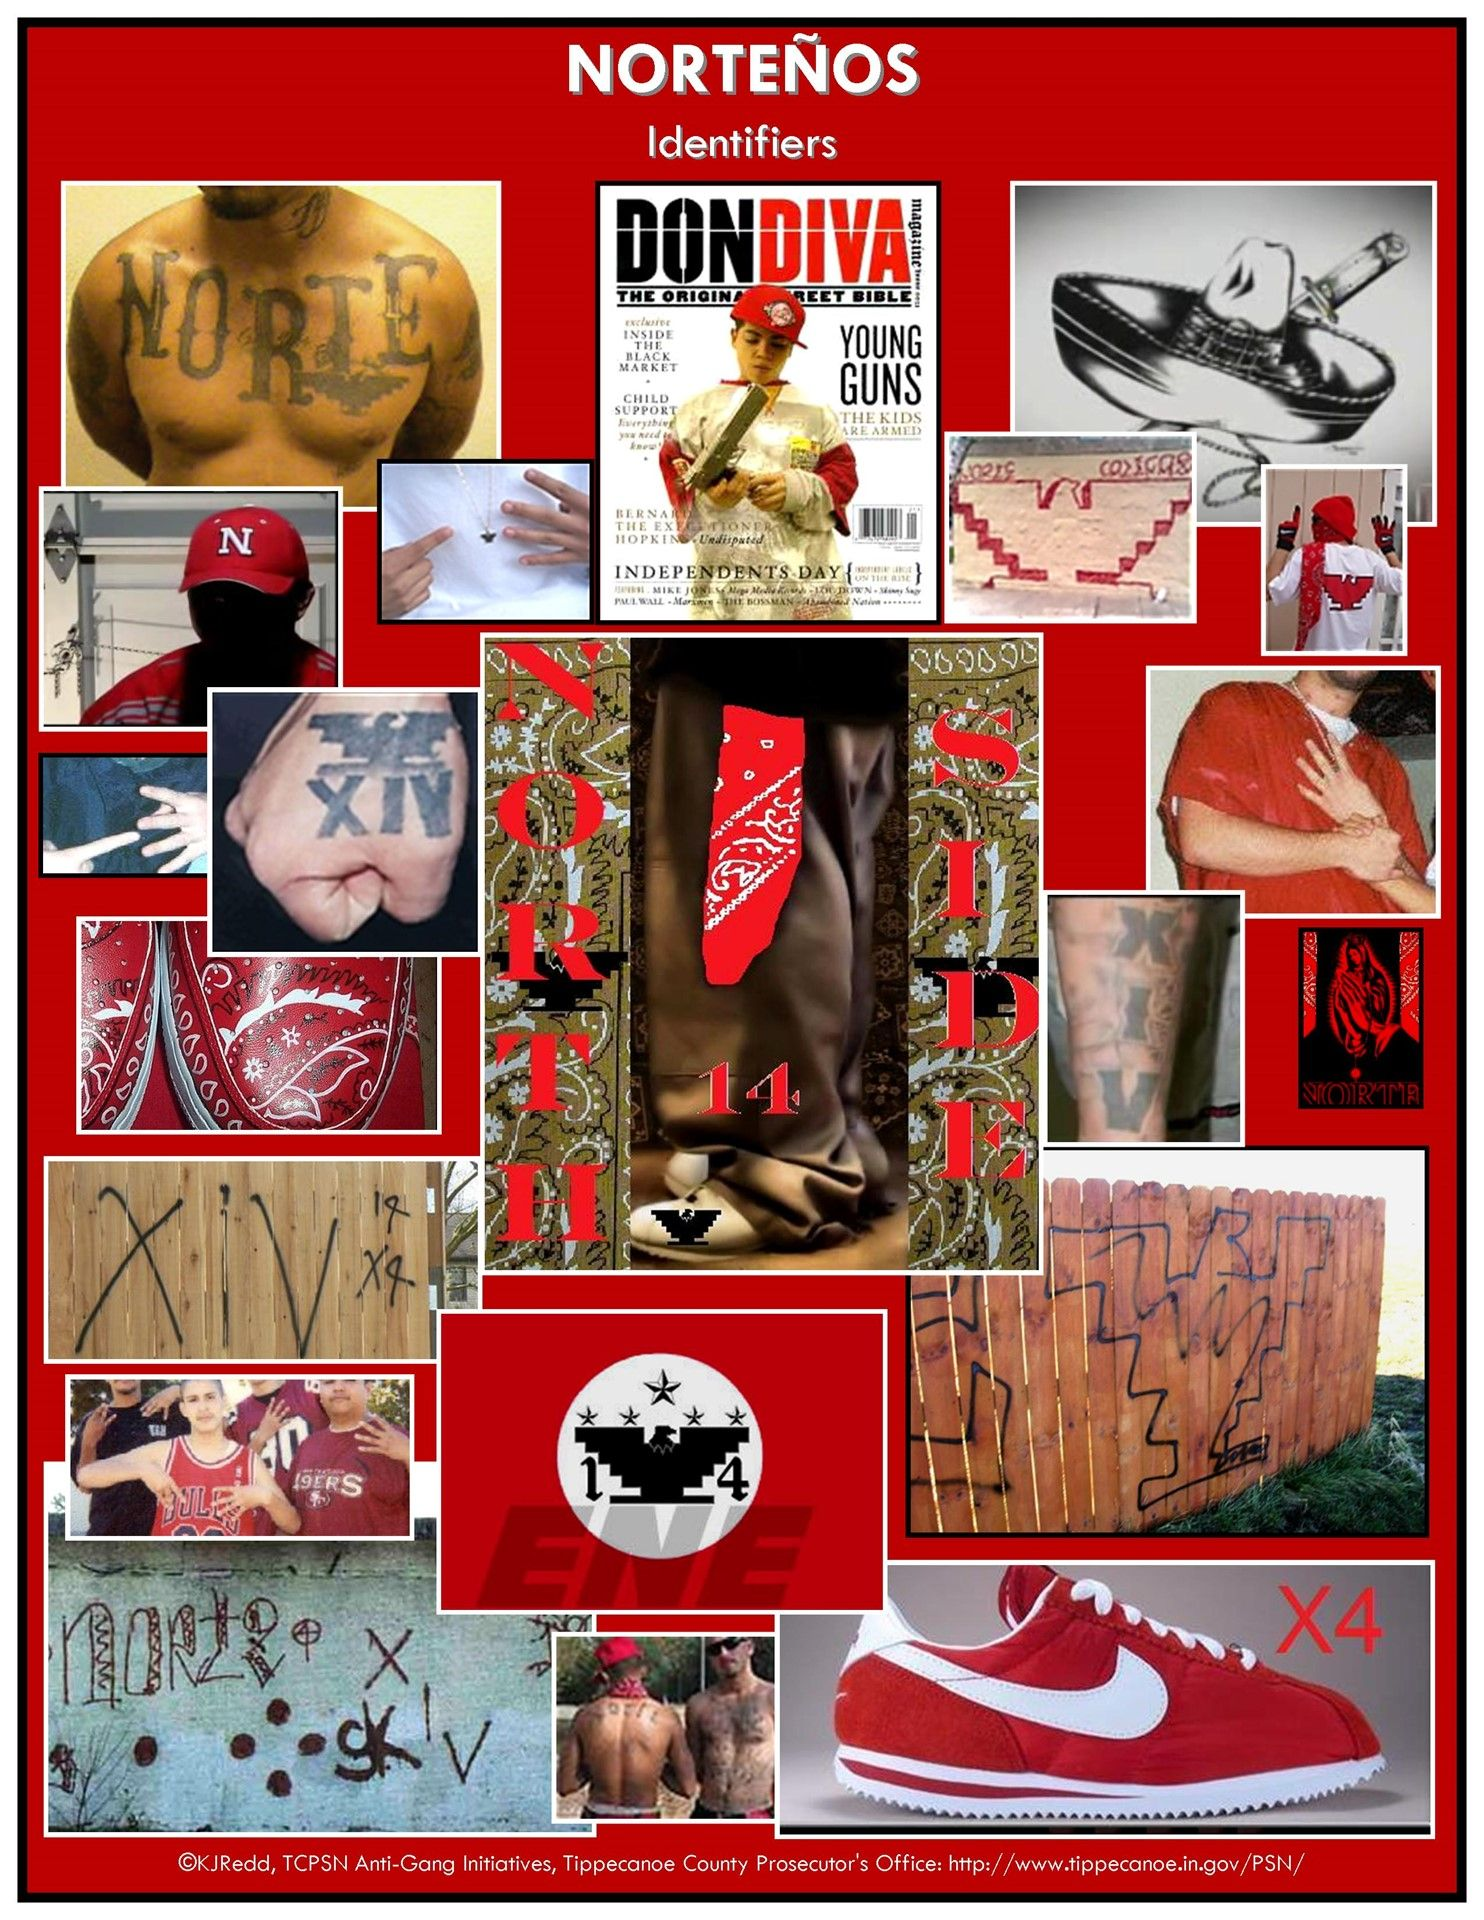 A Collage Of Product Identifiers And Tattoos Of The Nortenos Gang